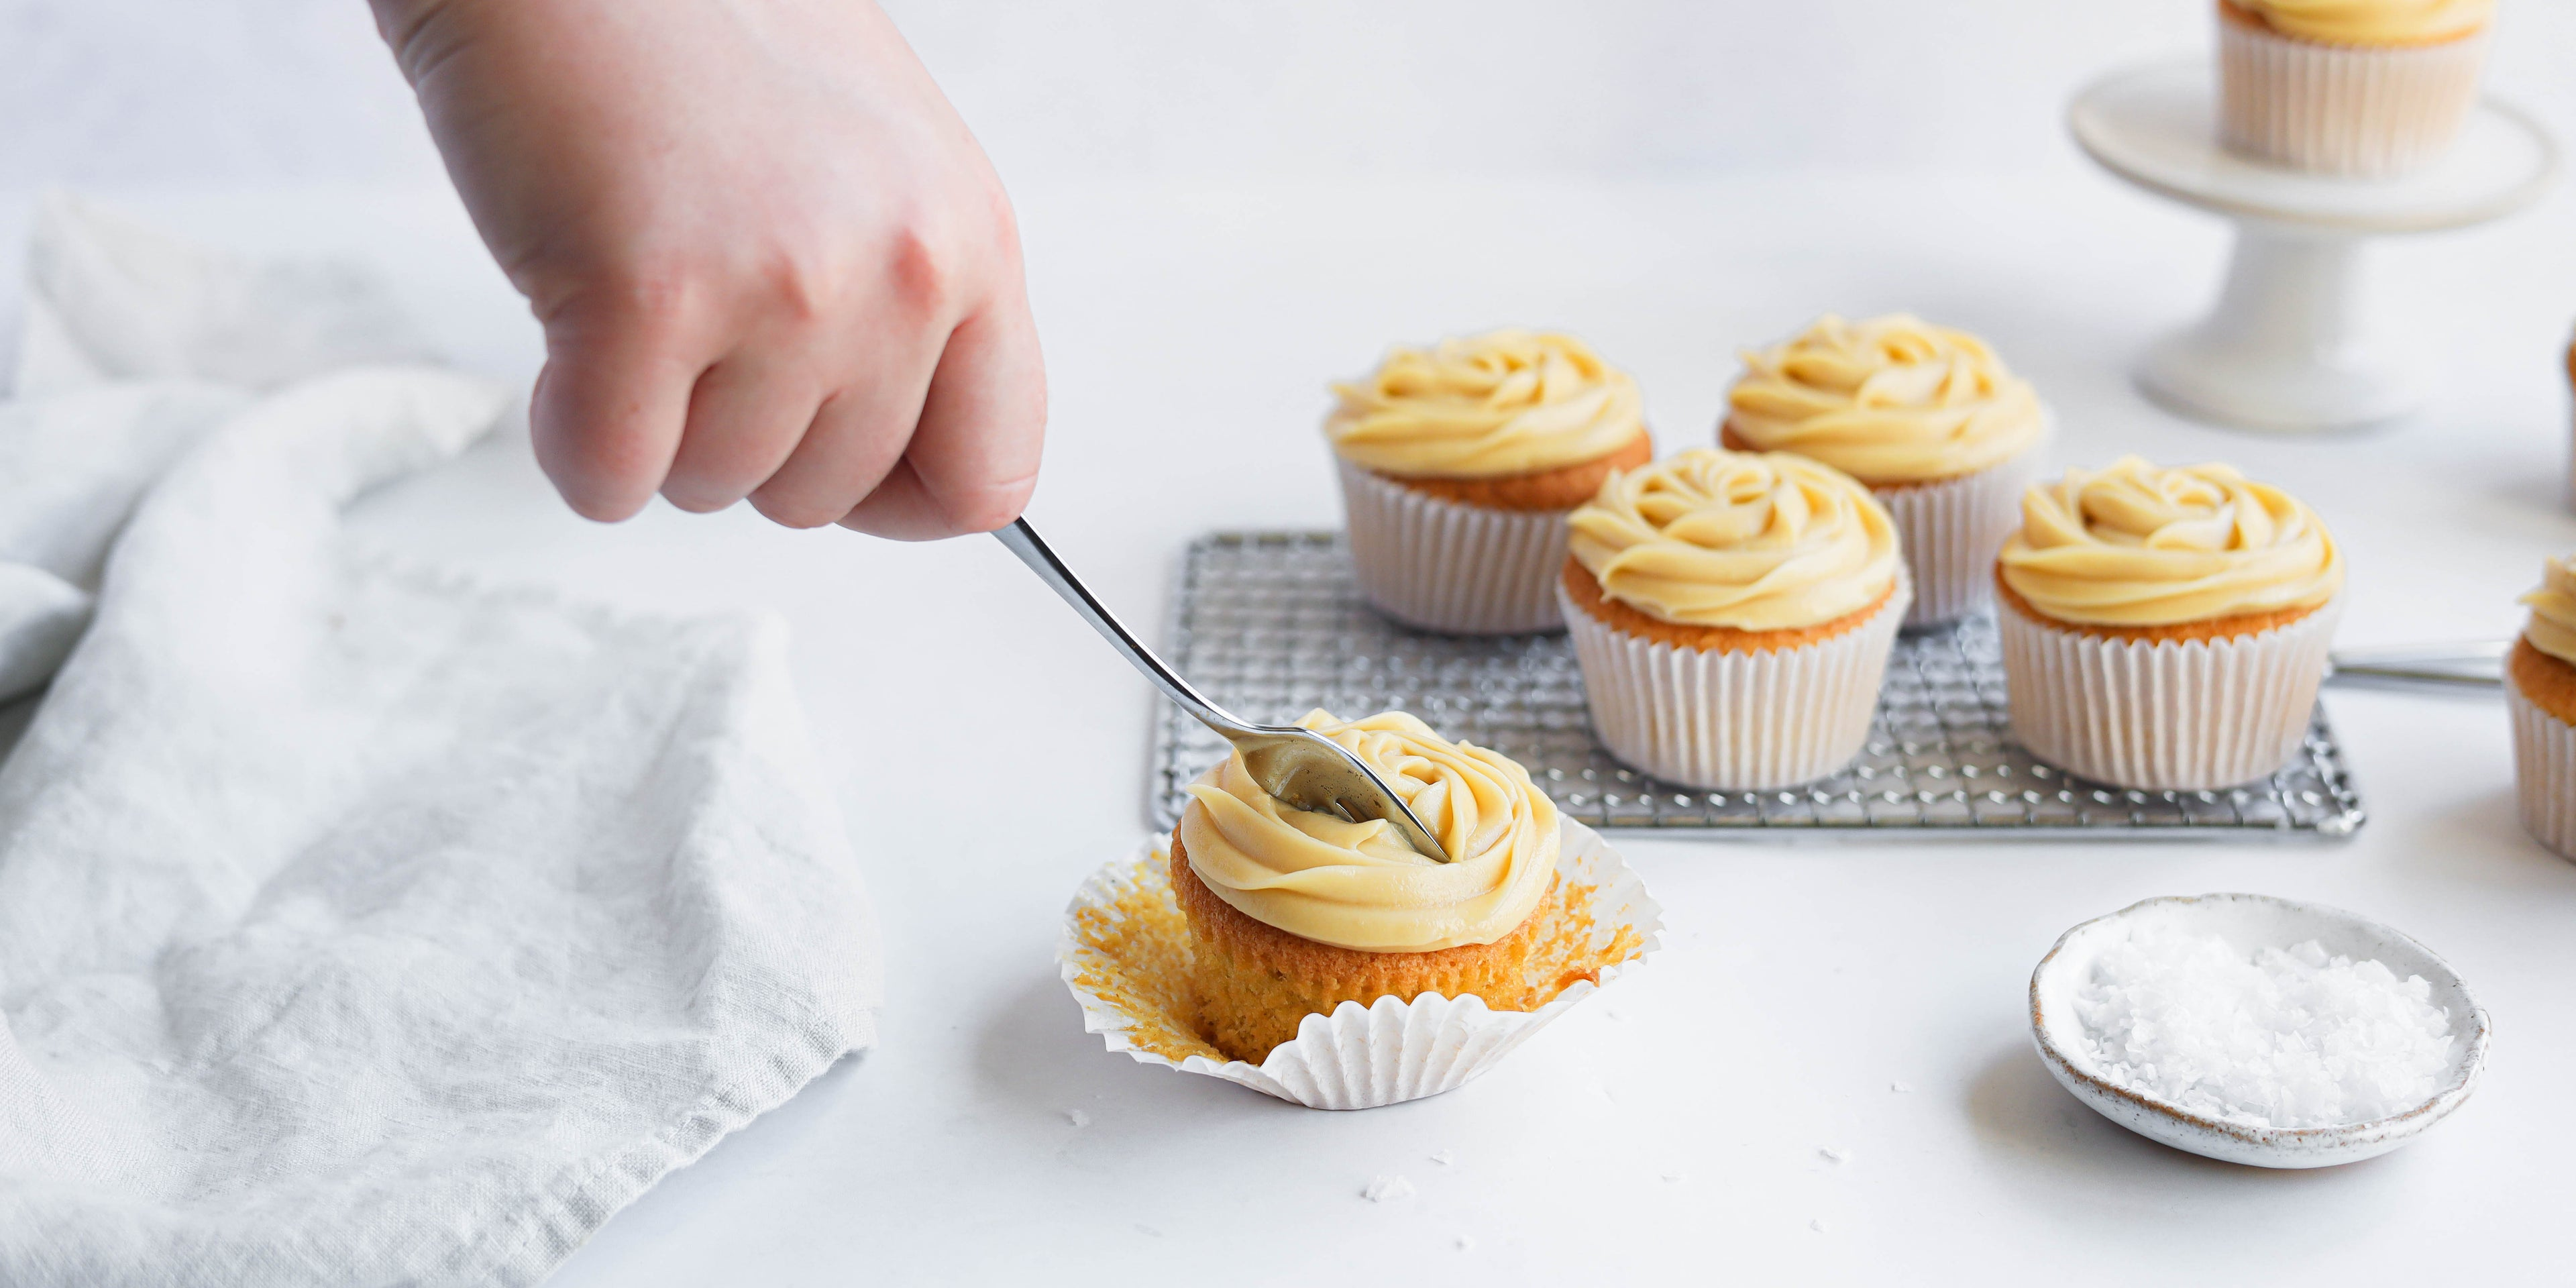 Salted Caramel Cupcakes with hand holding fork cutting into the cupcake buttercream, next to a small side dish of rock salt